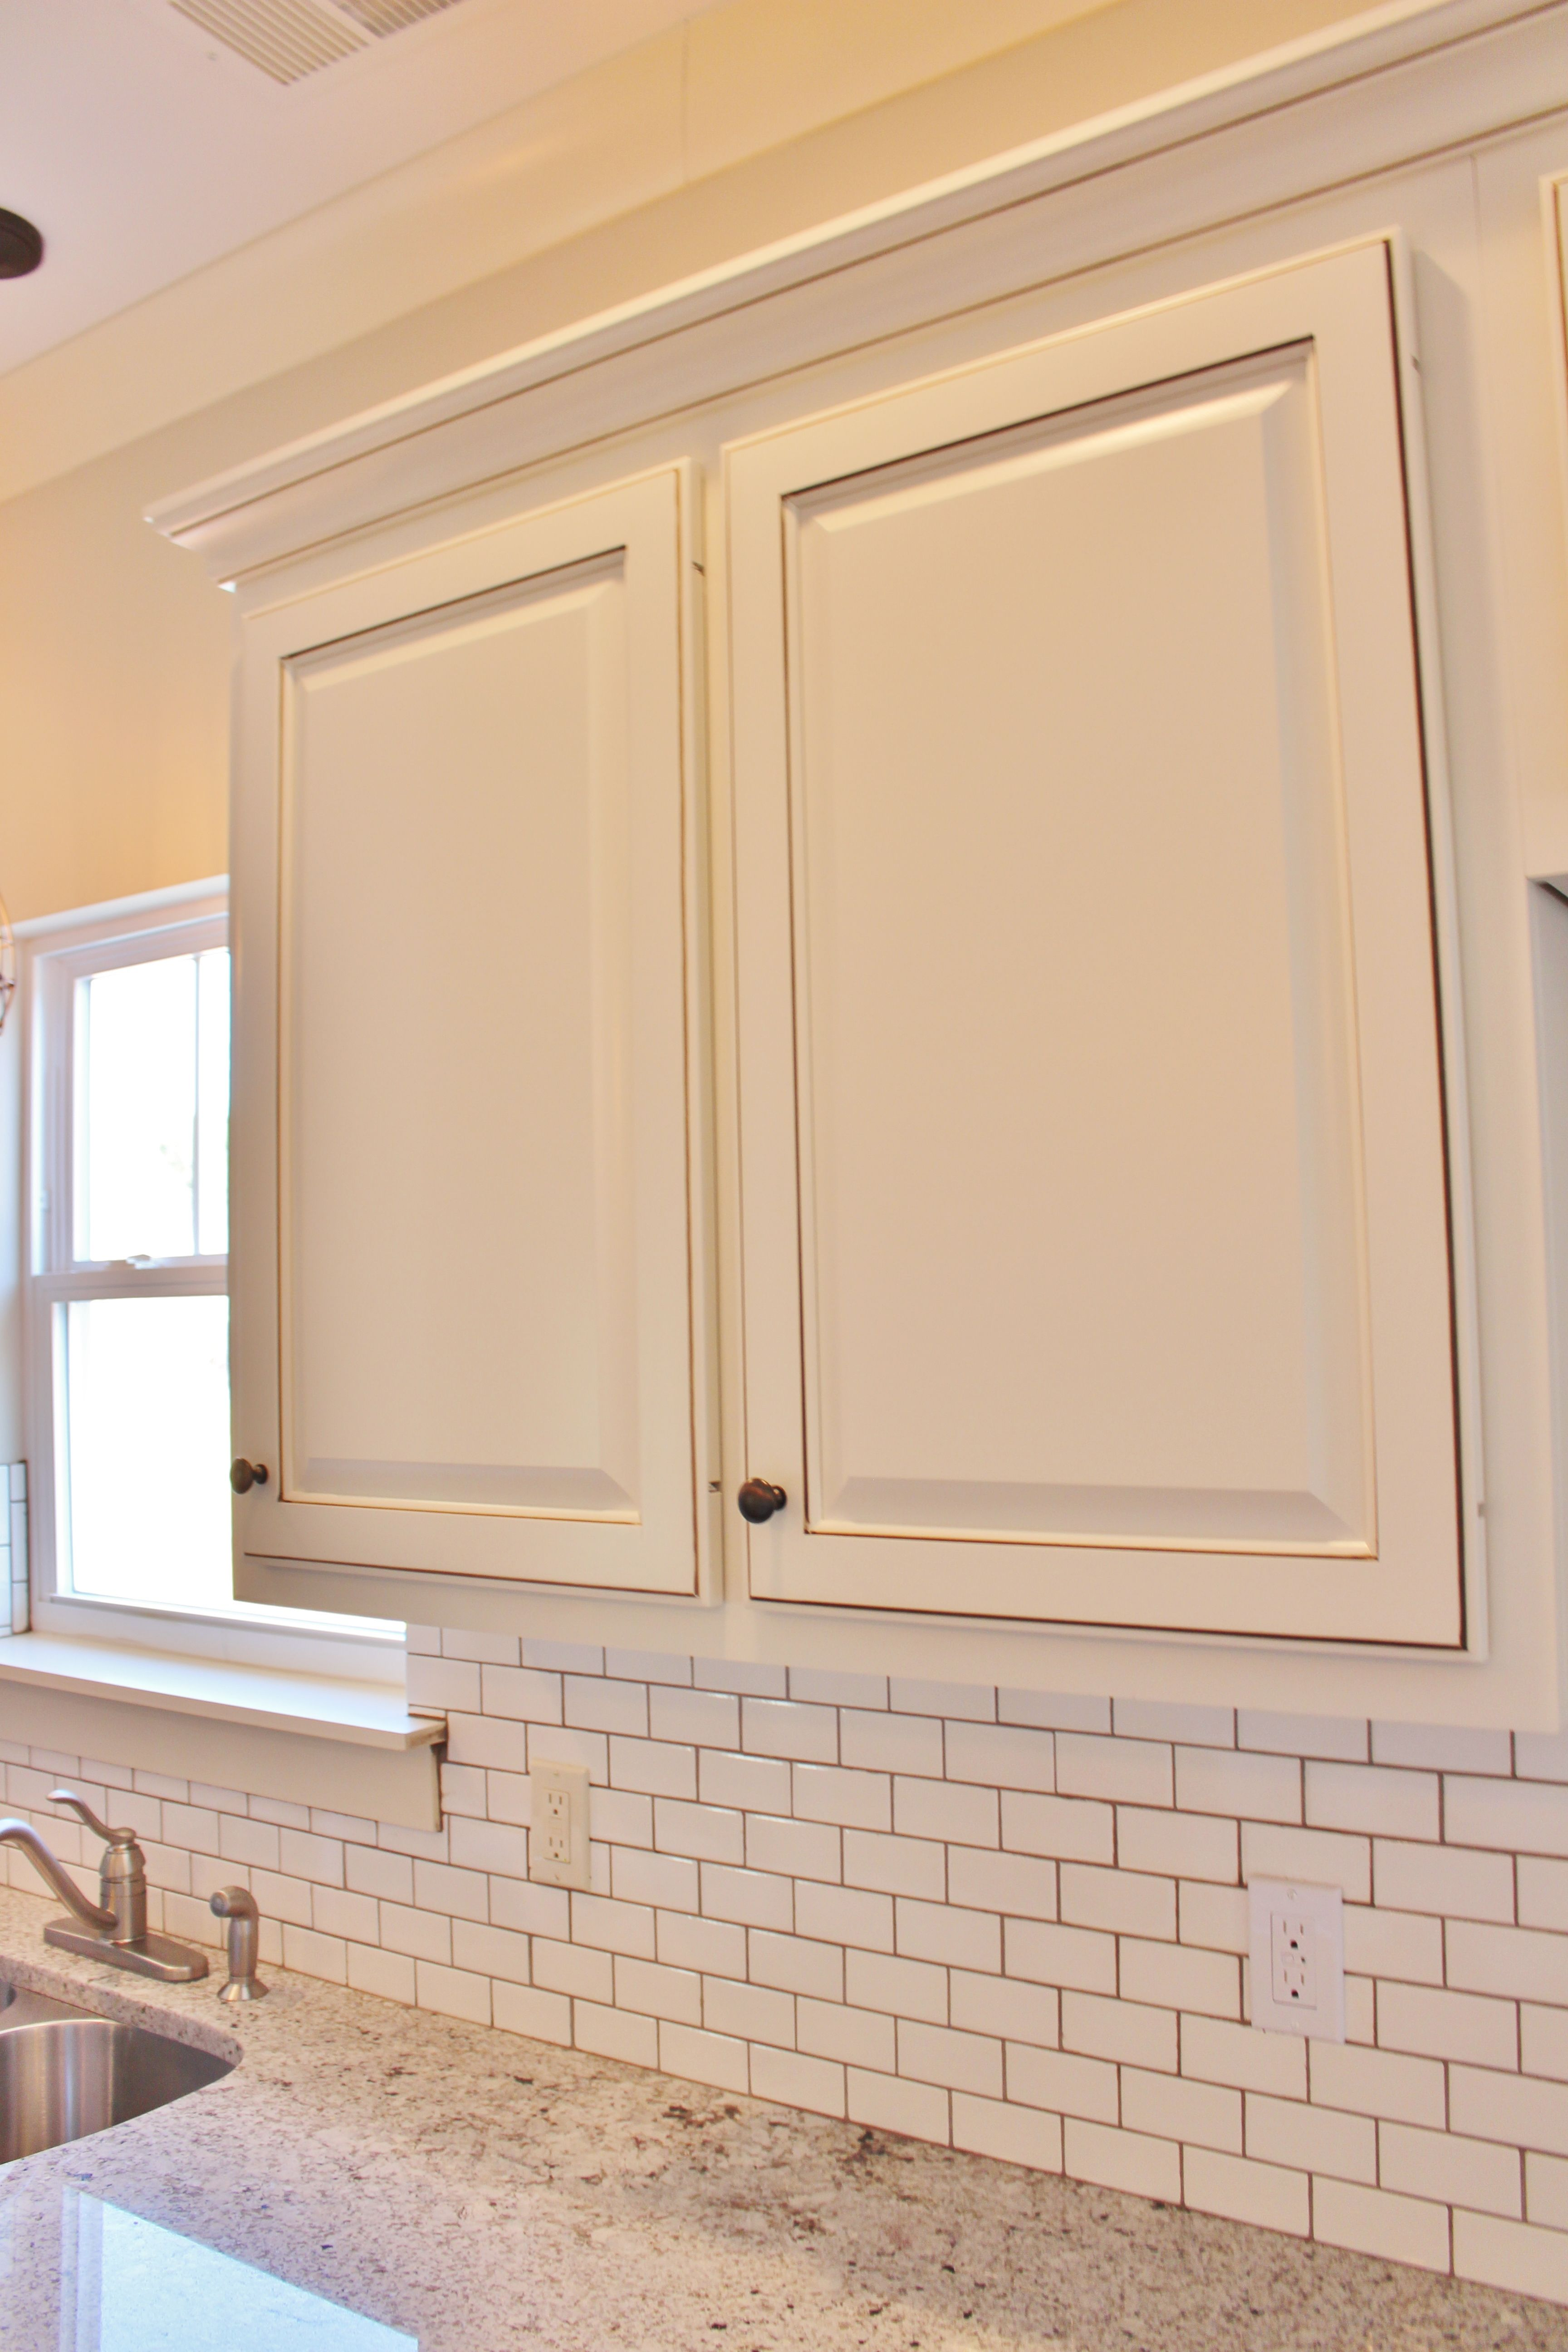 Painted Custom Cabinets White Subway Tile With Mocha Brown Grout